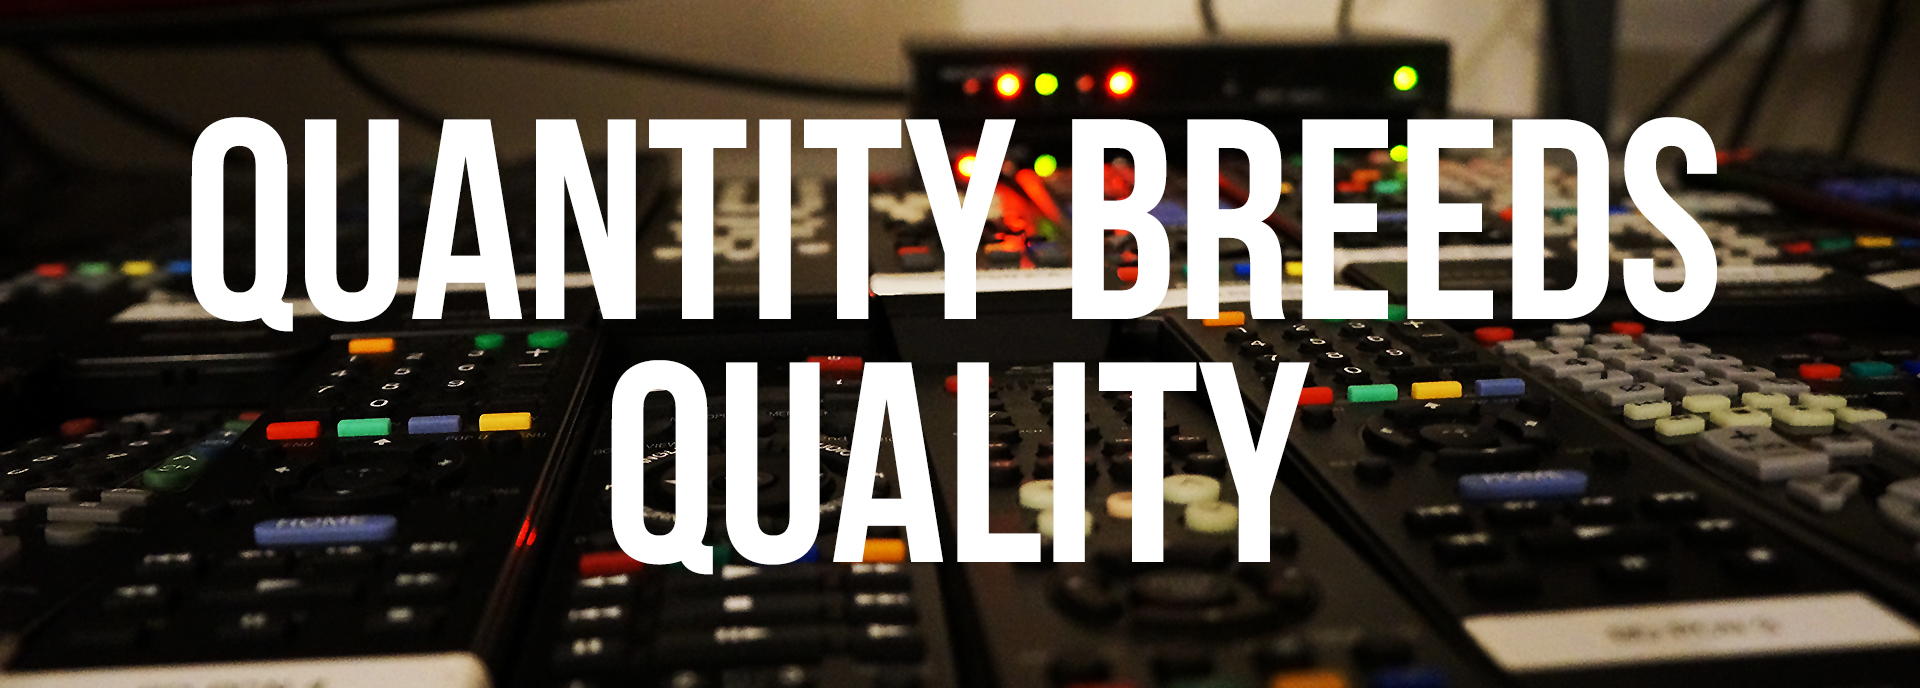 COMPATIBILITY-Mid-Banner